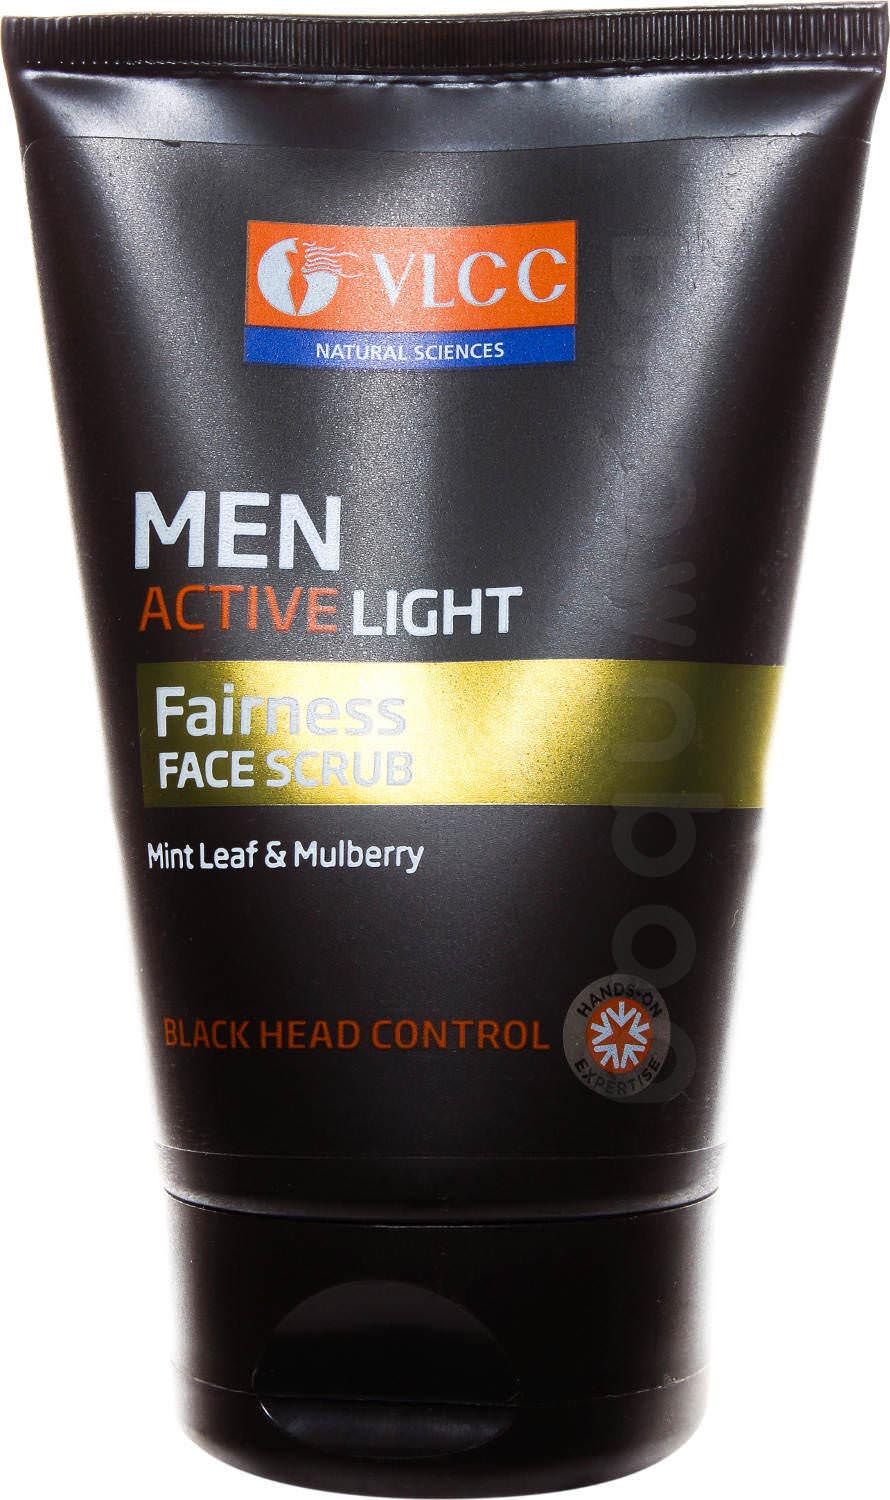 VLCC Men Active Light Fairness Face Scrub with Mint Leaf & Mulberry